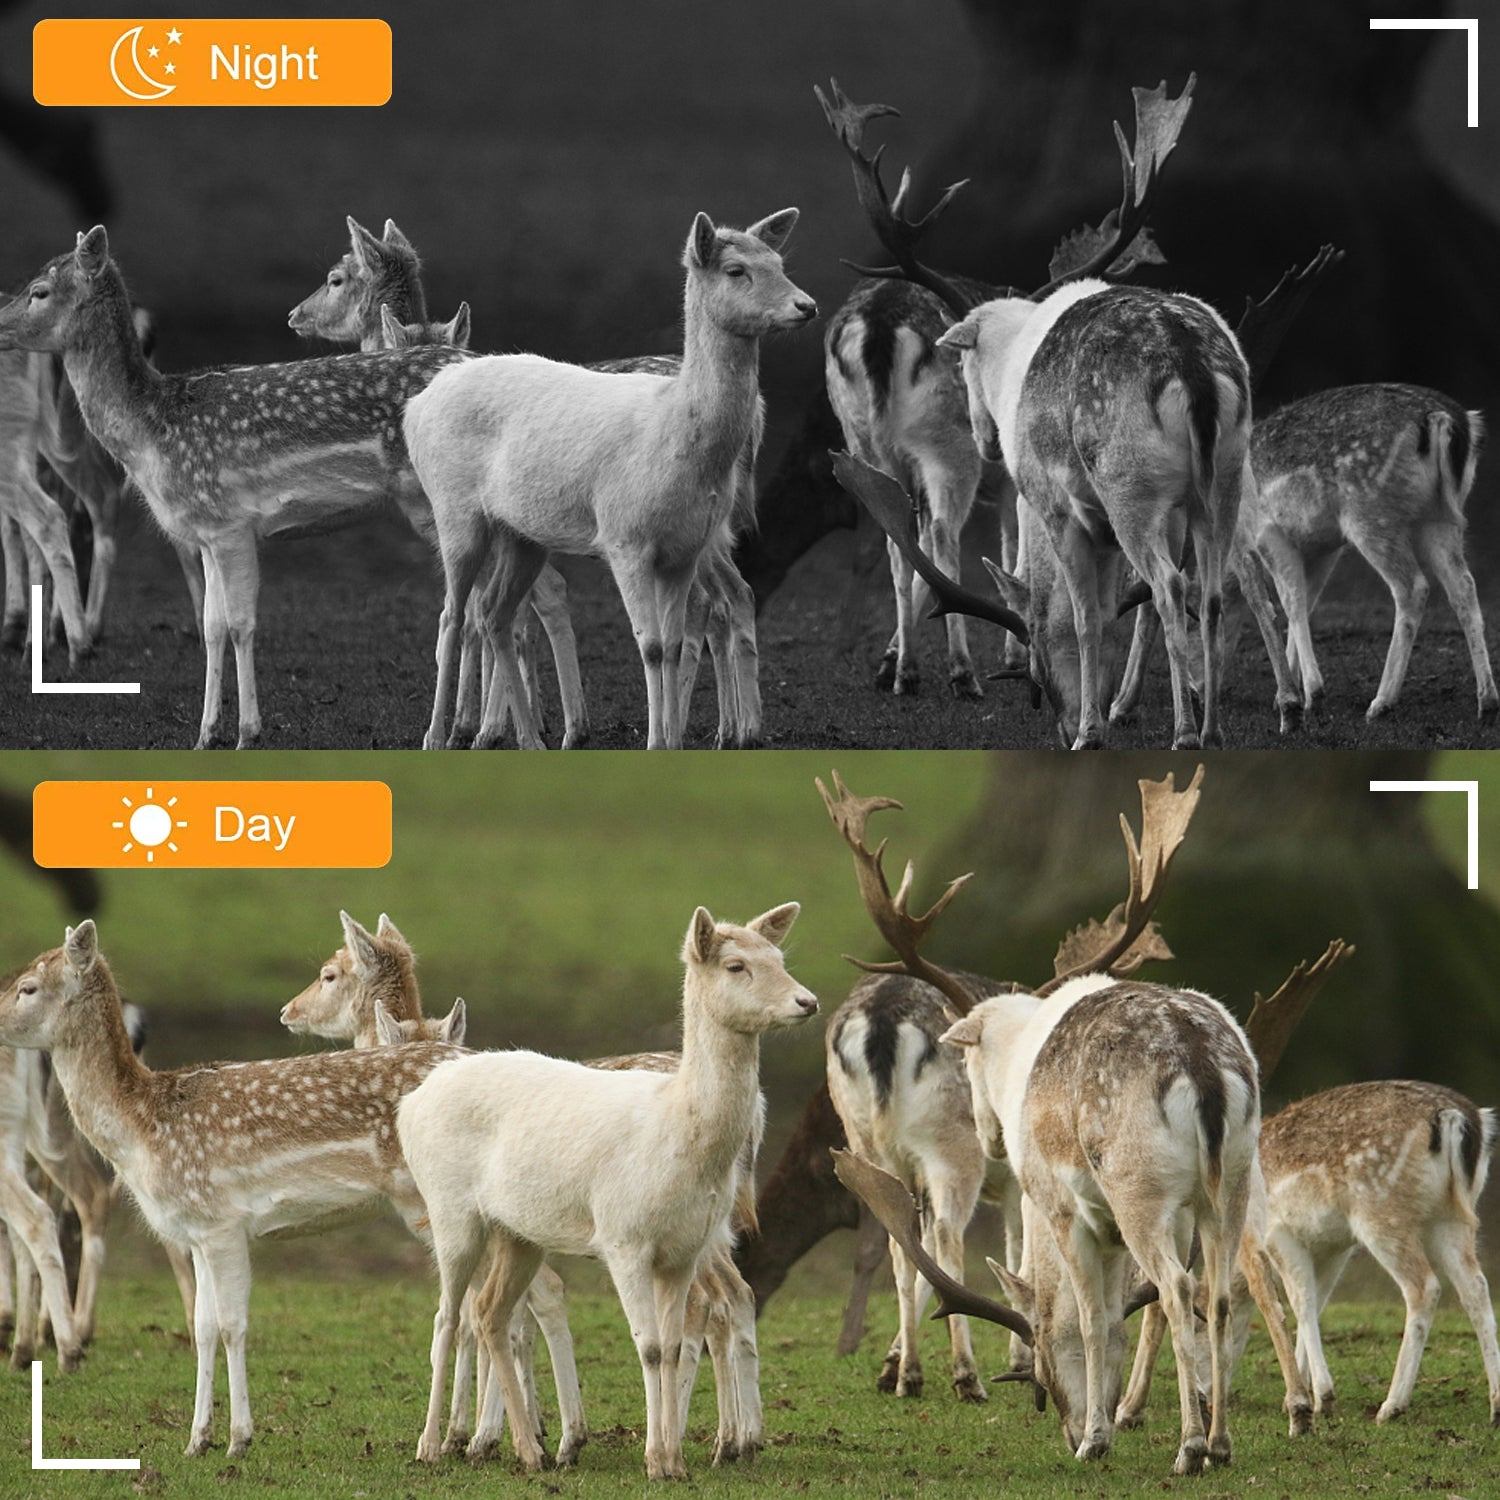 16MP 1080P Game Trail Deer Hunting Camera with Night Vision 120° 2-PIR Sensor 0.2S Fast Trigger Waterproof & Password Protected Photo & Video Model